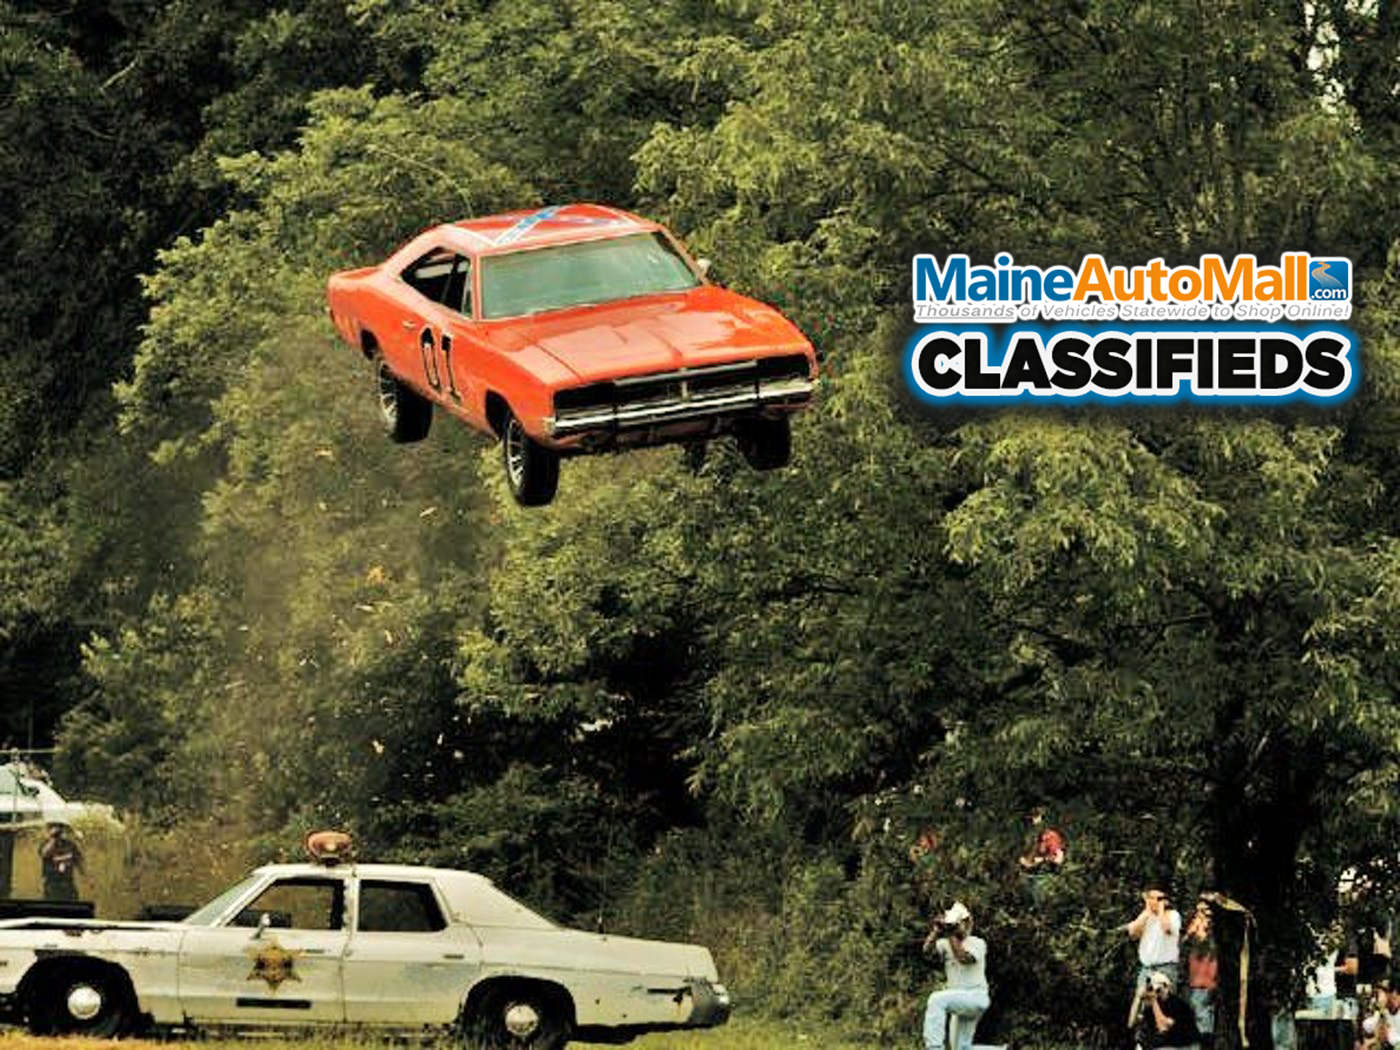 Maine Local Classifieds | Sponsored by MaineAutoMall.com